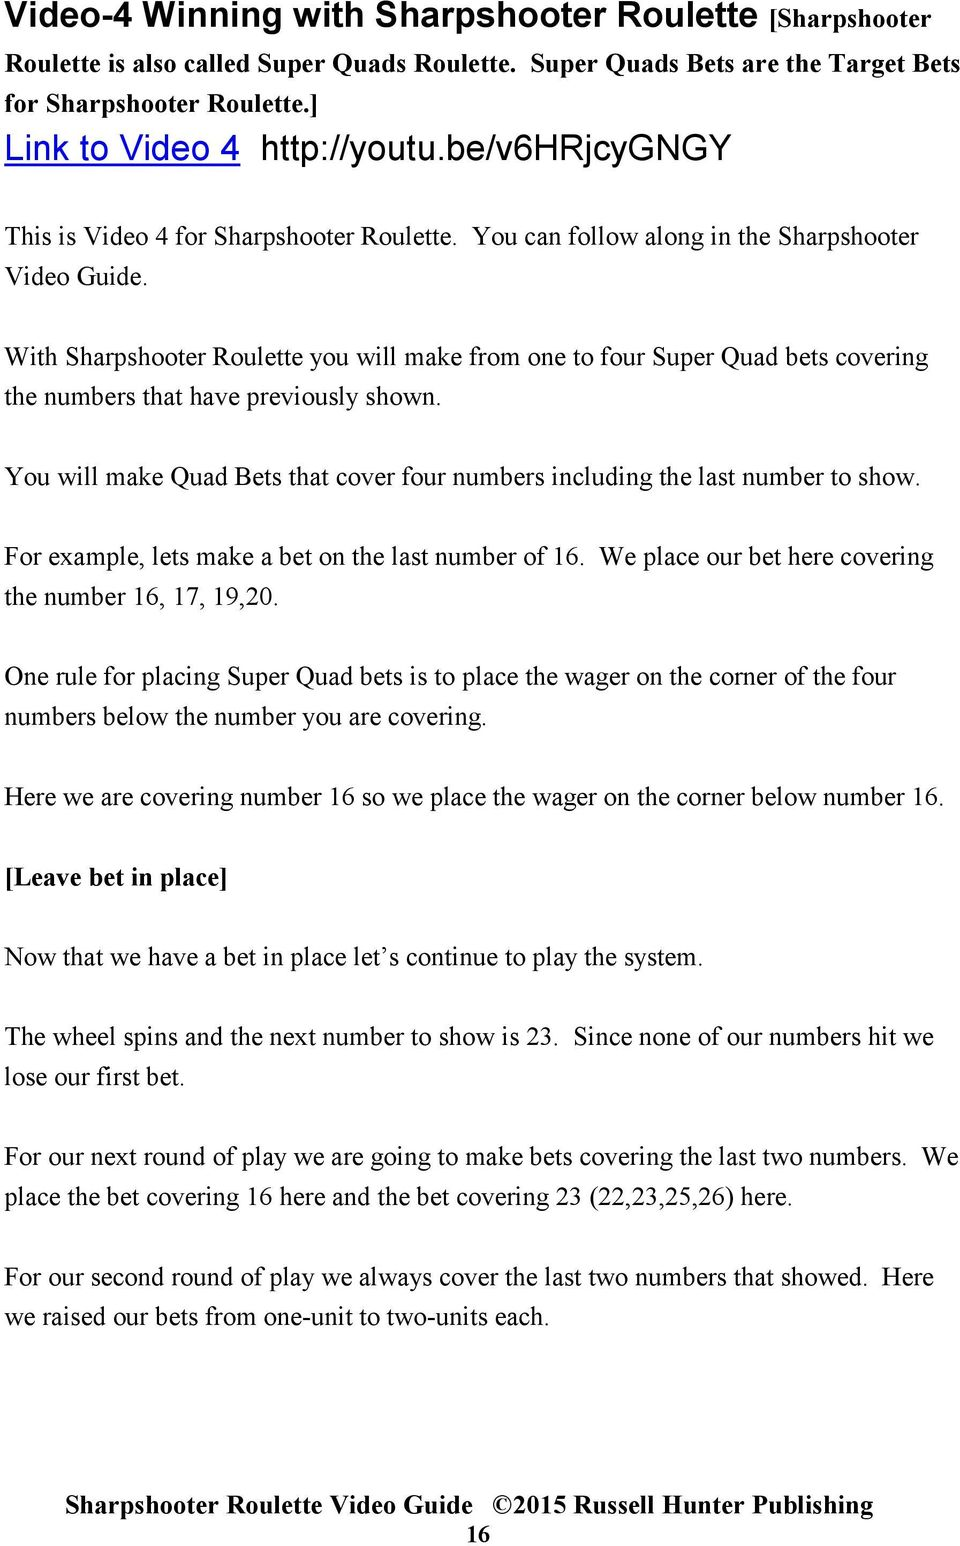 With Sharpshooter Roulette you will make from one to four Super Quad bets covering the numbers that have previously shown.